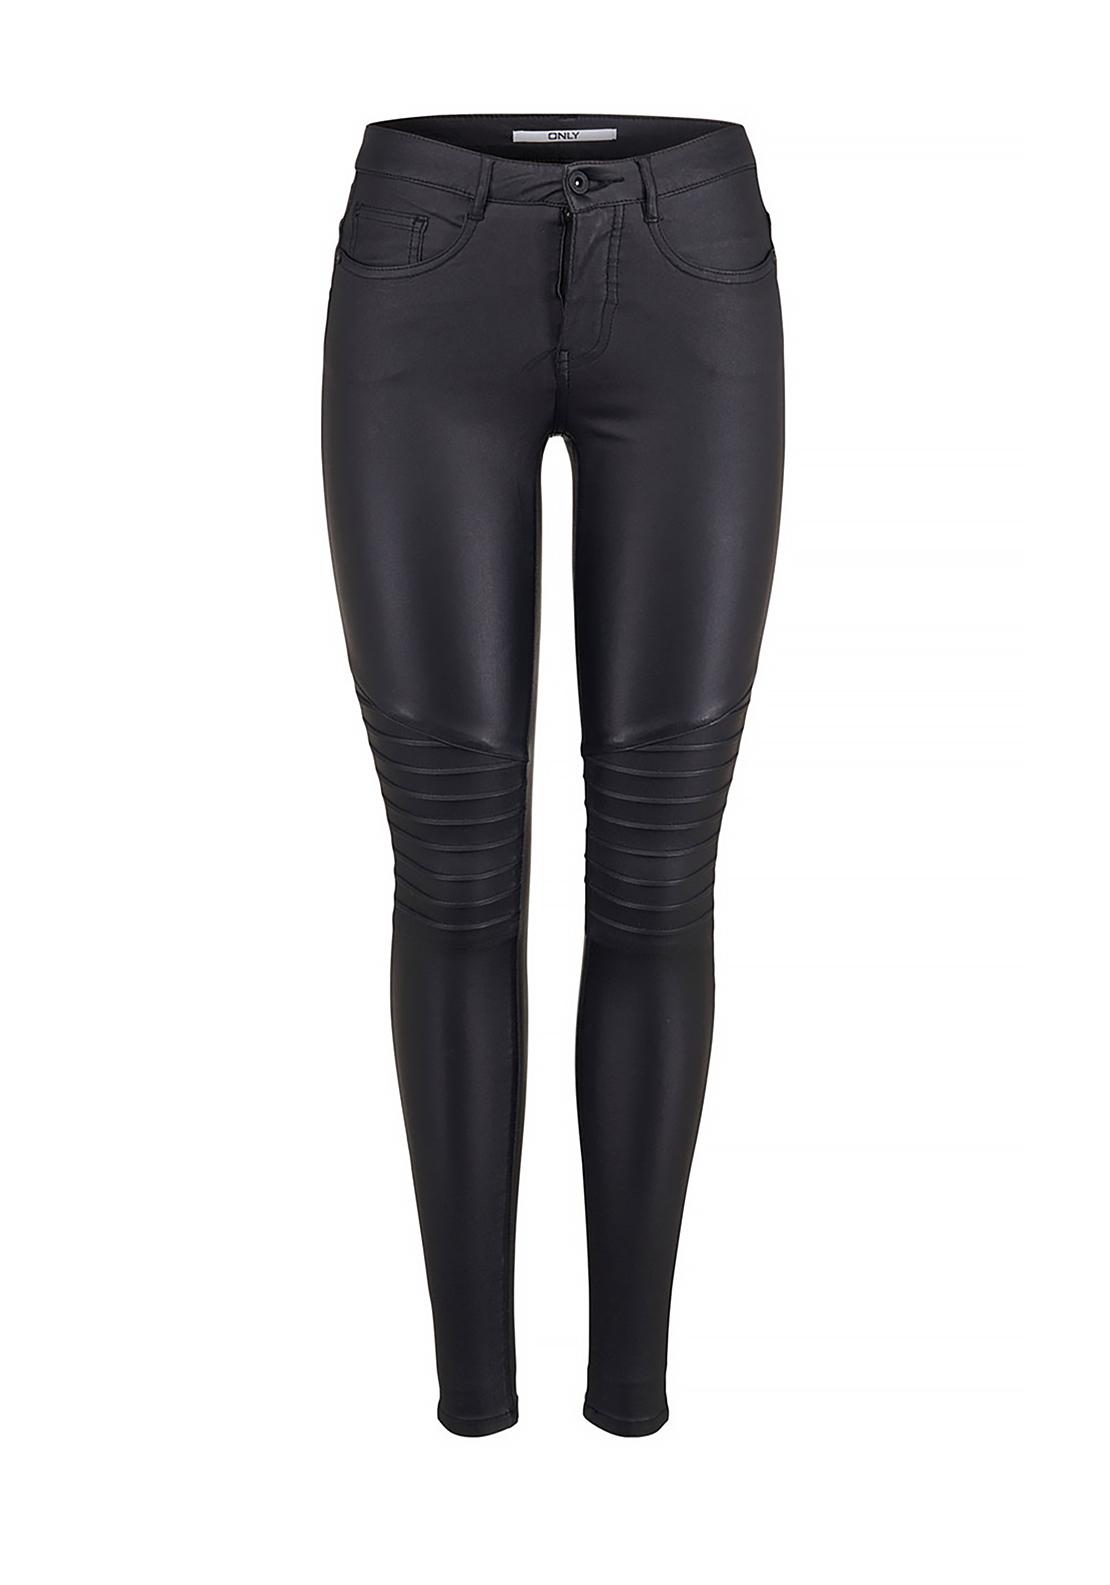 Only Reg Skinny Leg Leather Look Biker Jeans, Black